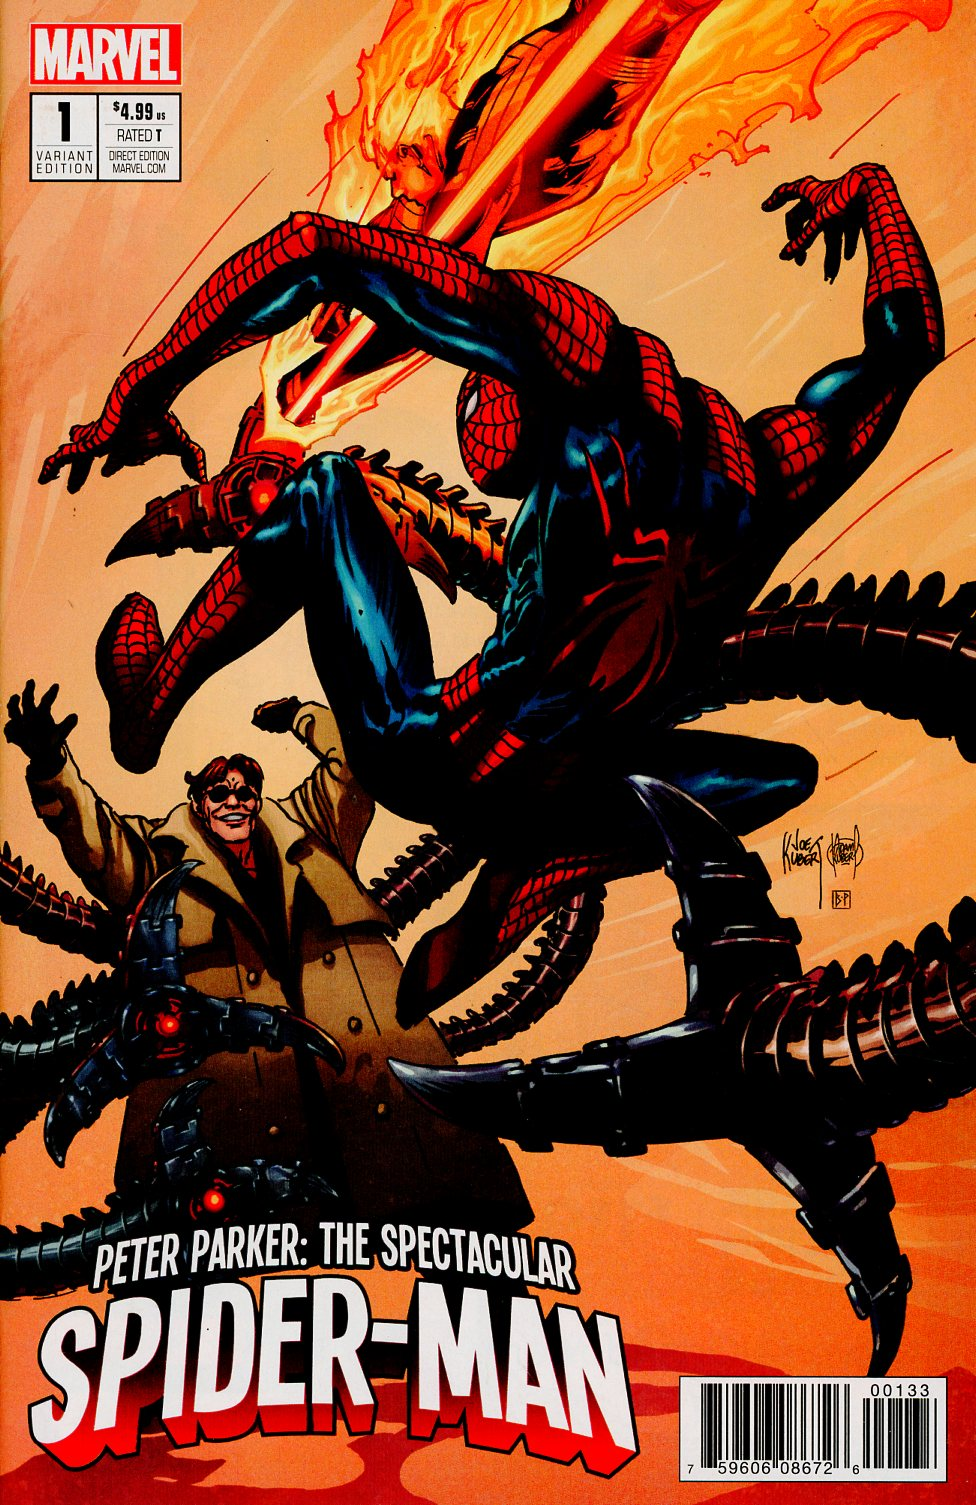 Peter Parker Spectacular Spider-Man #1 Cover S ComicSketchArt.com Exclusive Joe Kubert & Adam Kubert Color Variant Cover